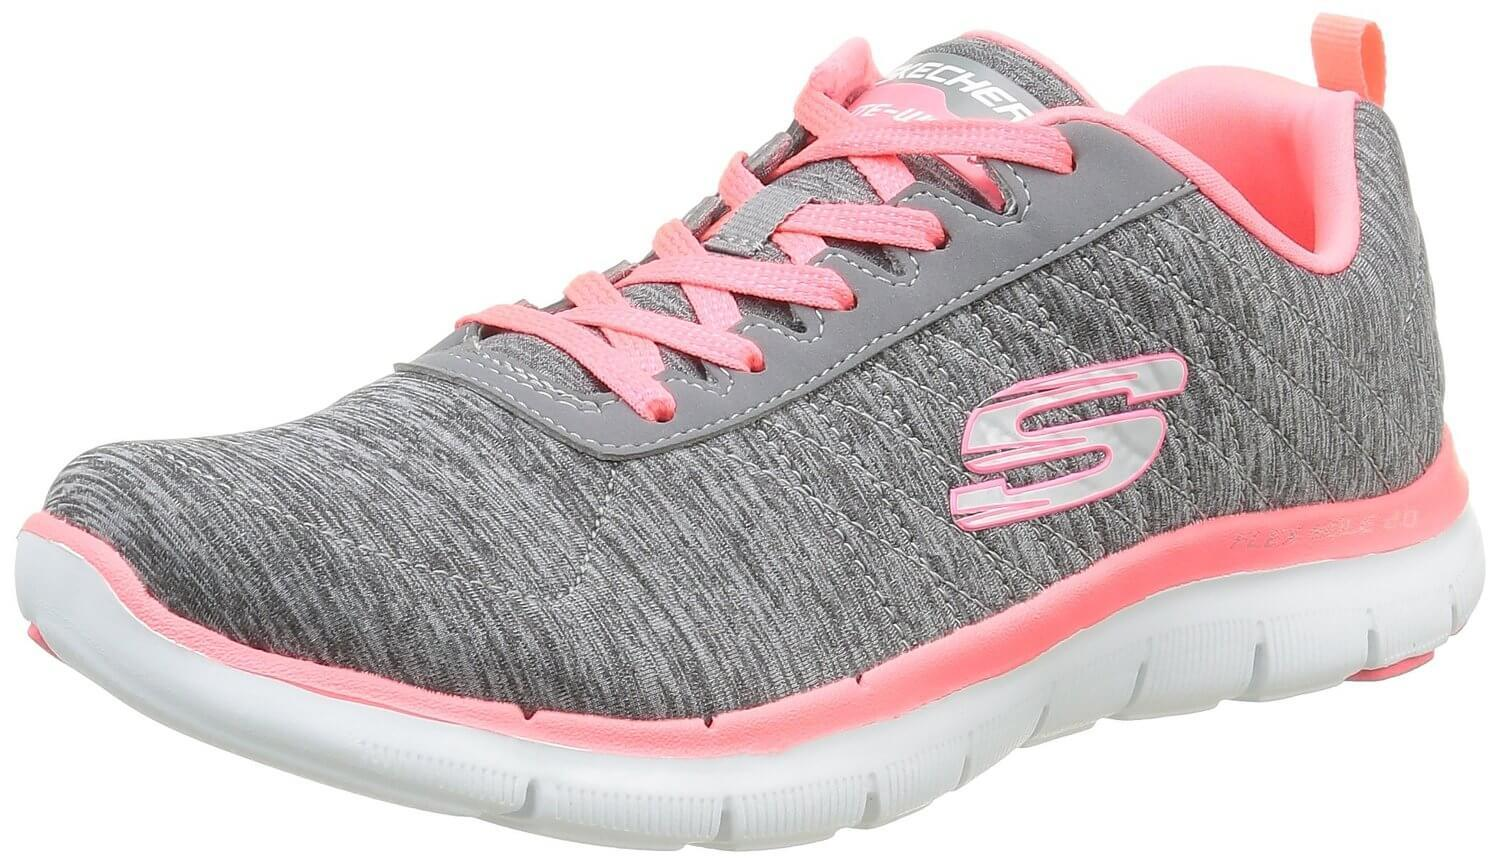 Skechers Flex Appeal Review - Buy or Not in June 2018?